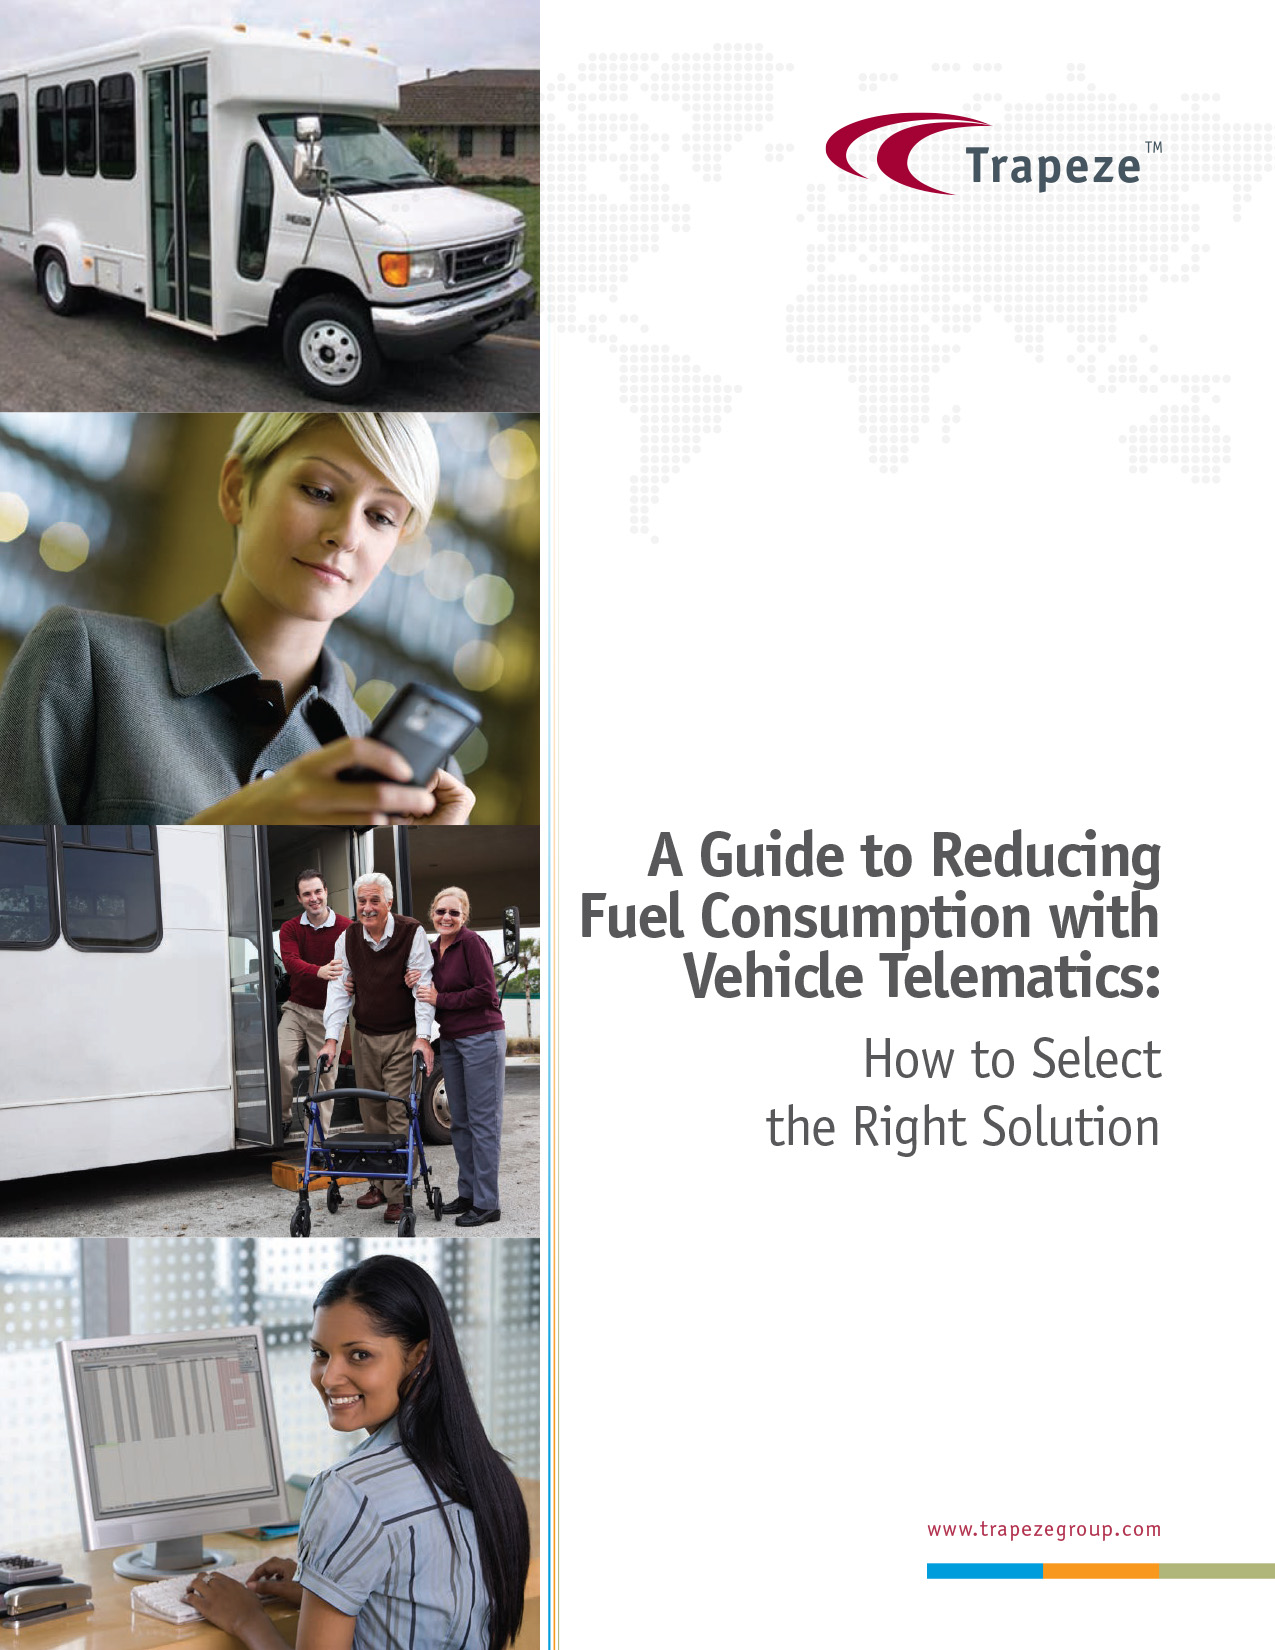 Whitepaper: A guide to reducing fuel consumption with vehicle telematics